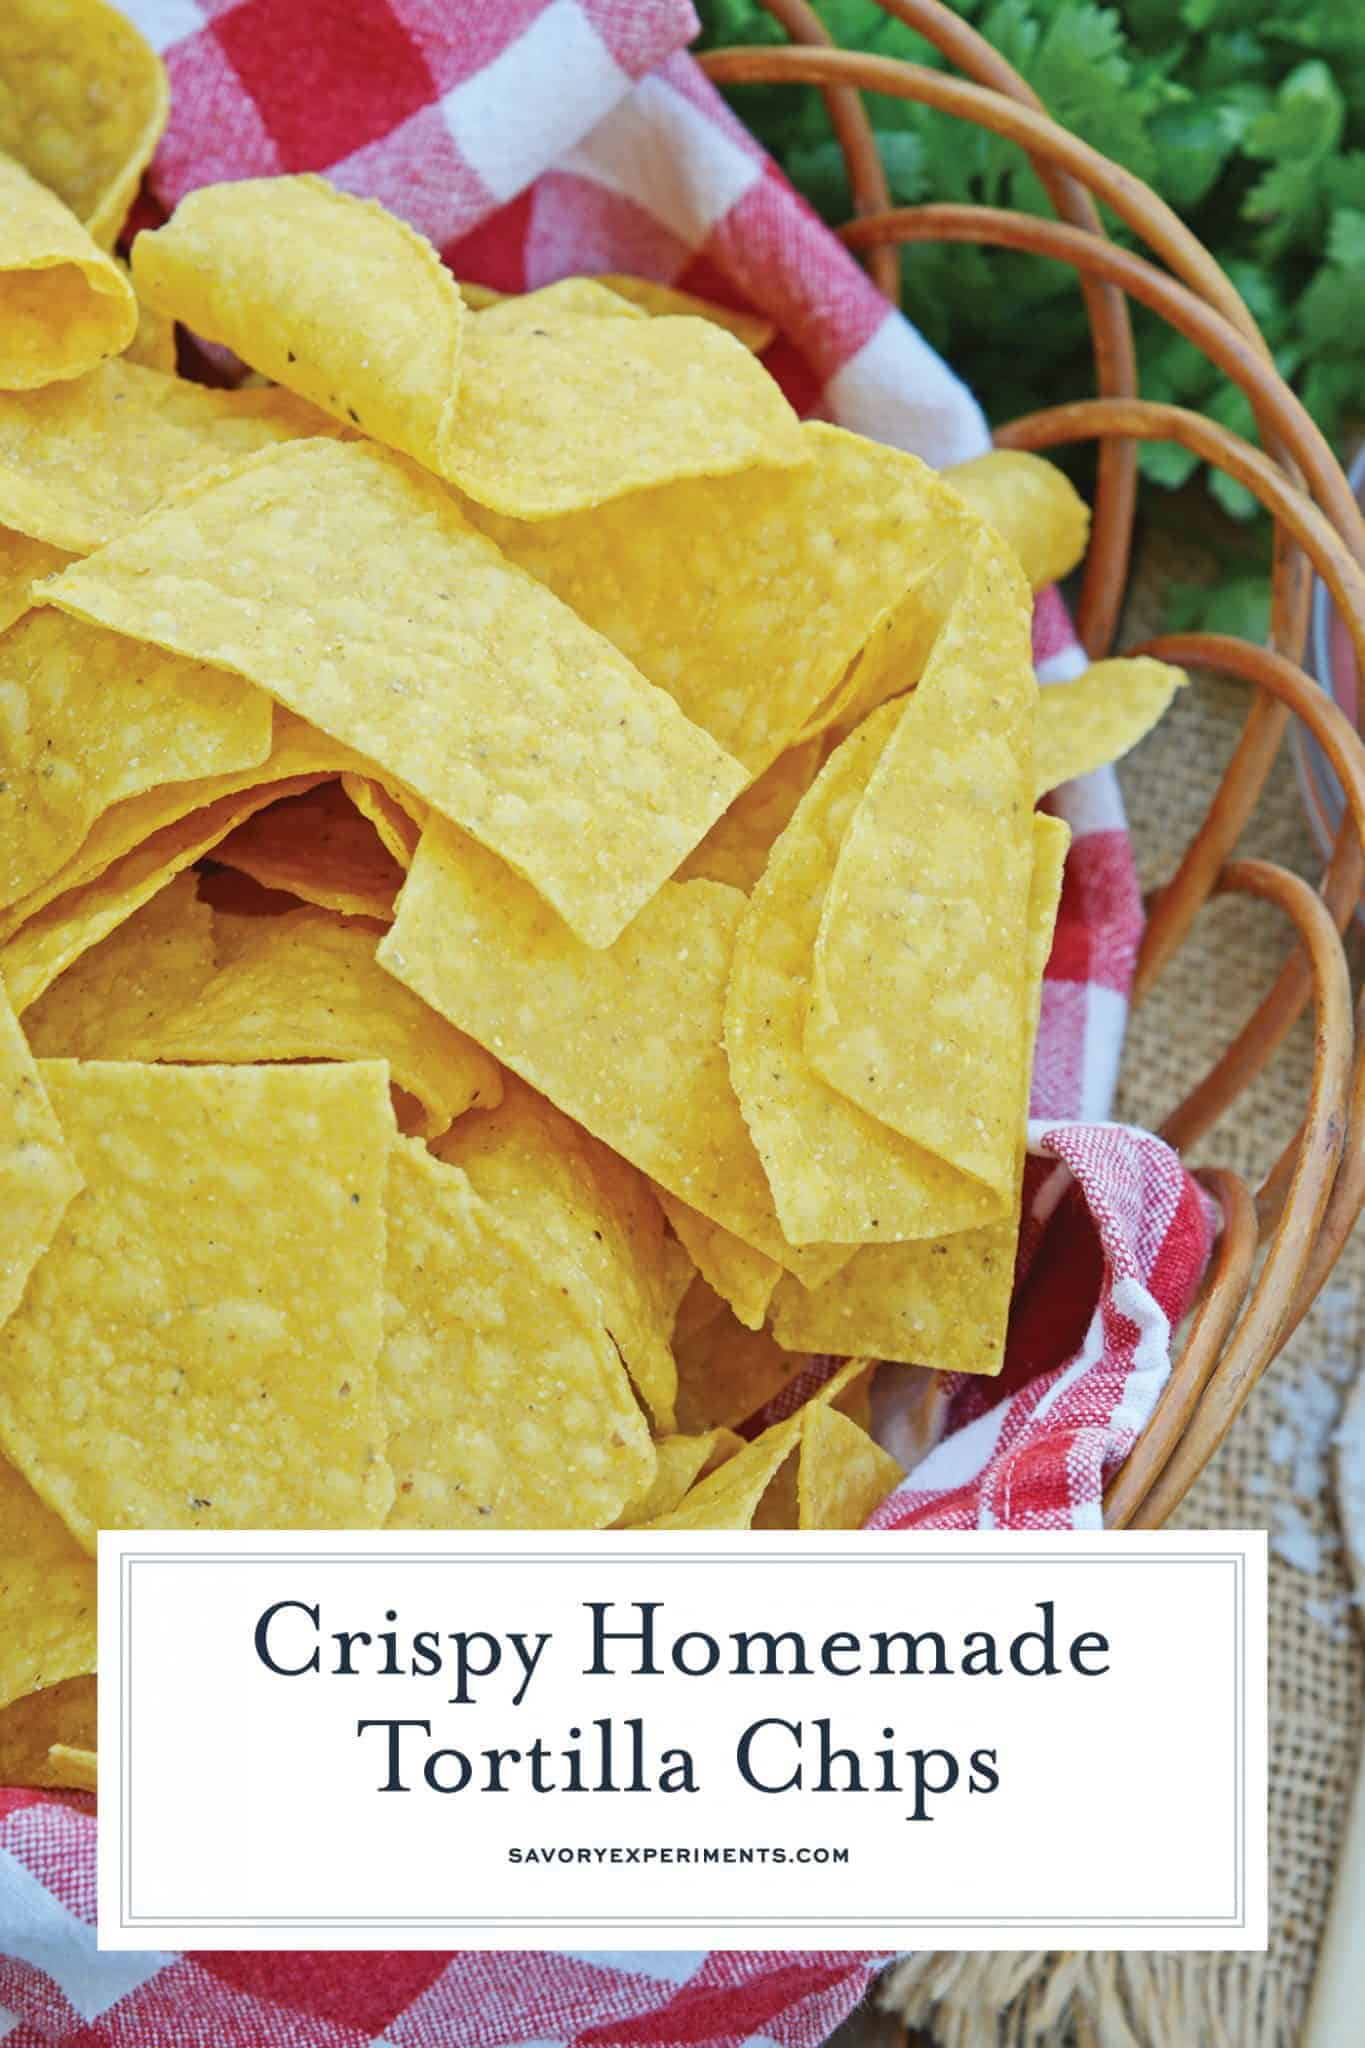 Basket of homemade tortilla chips